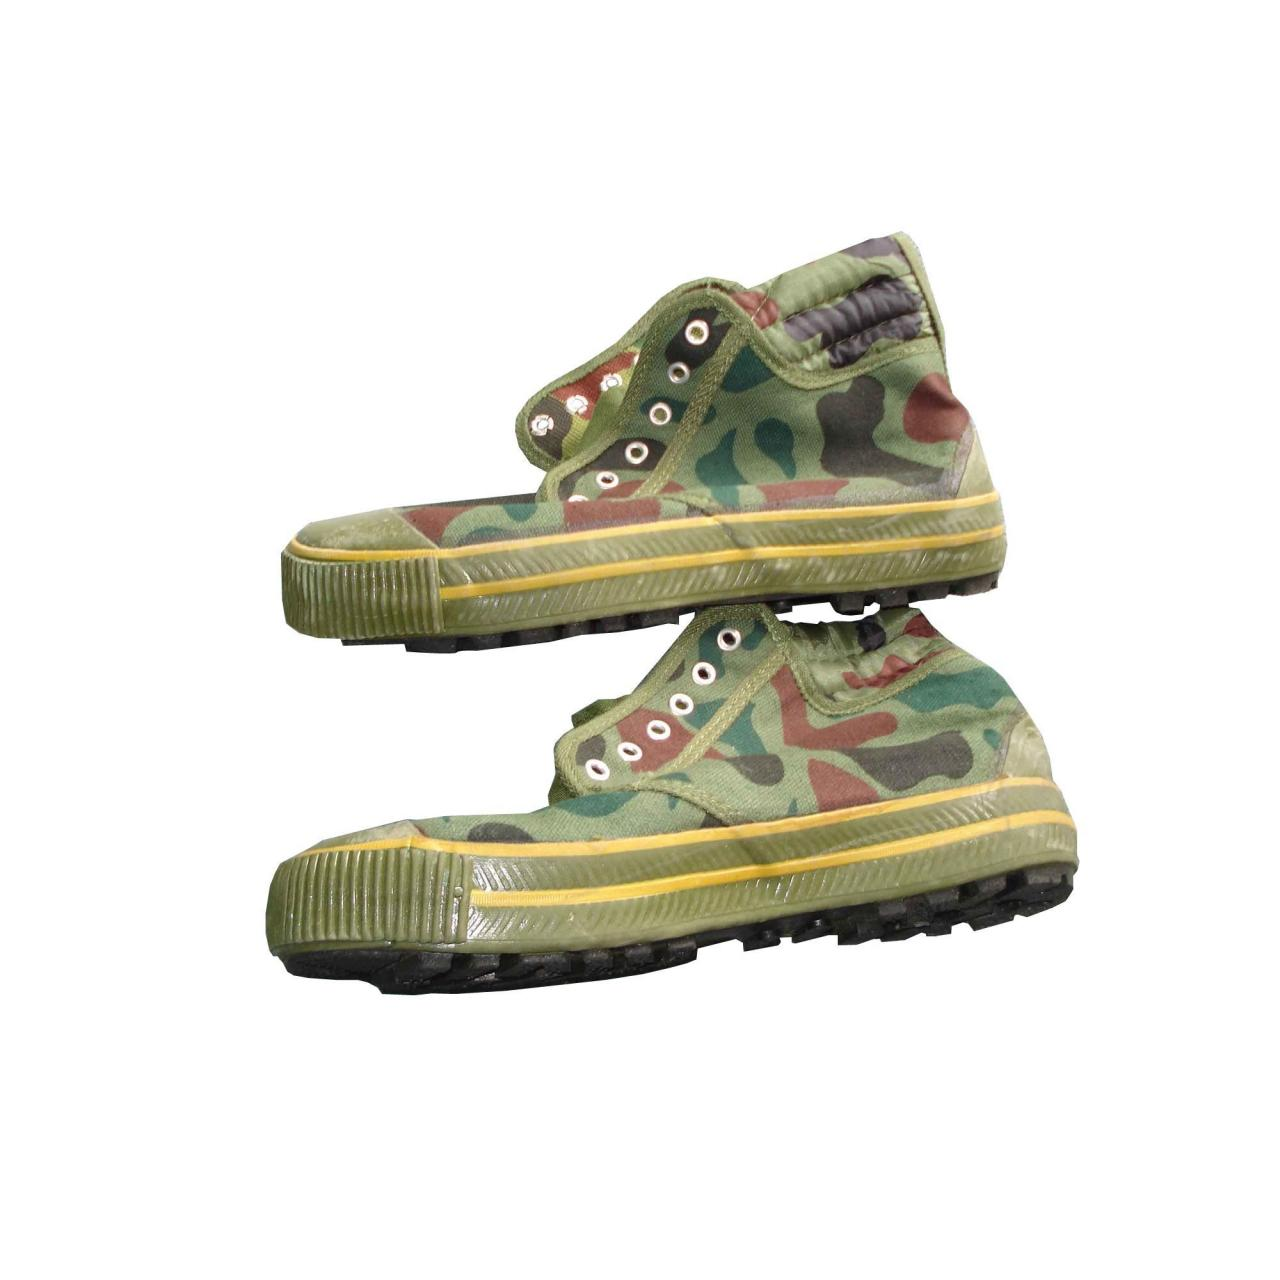 Quality BT-12-01 Army Shoes MILITARY BOOT for sale